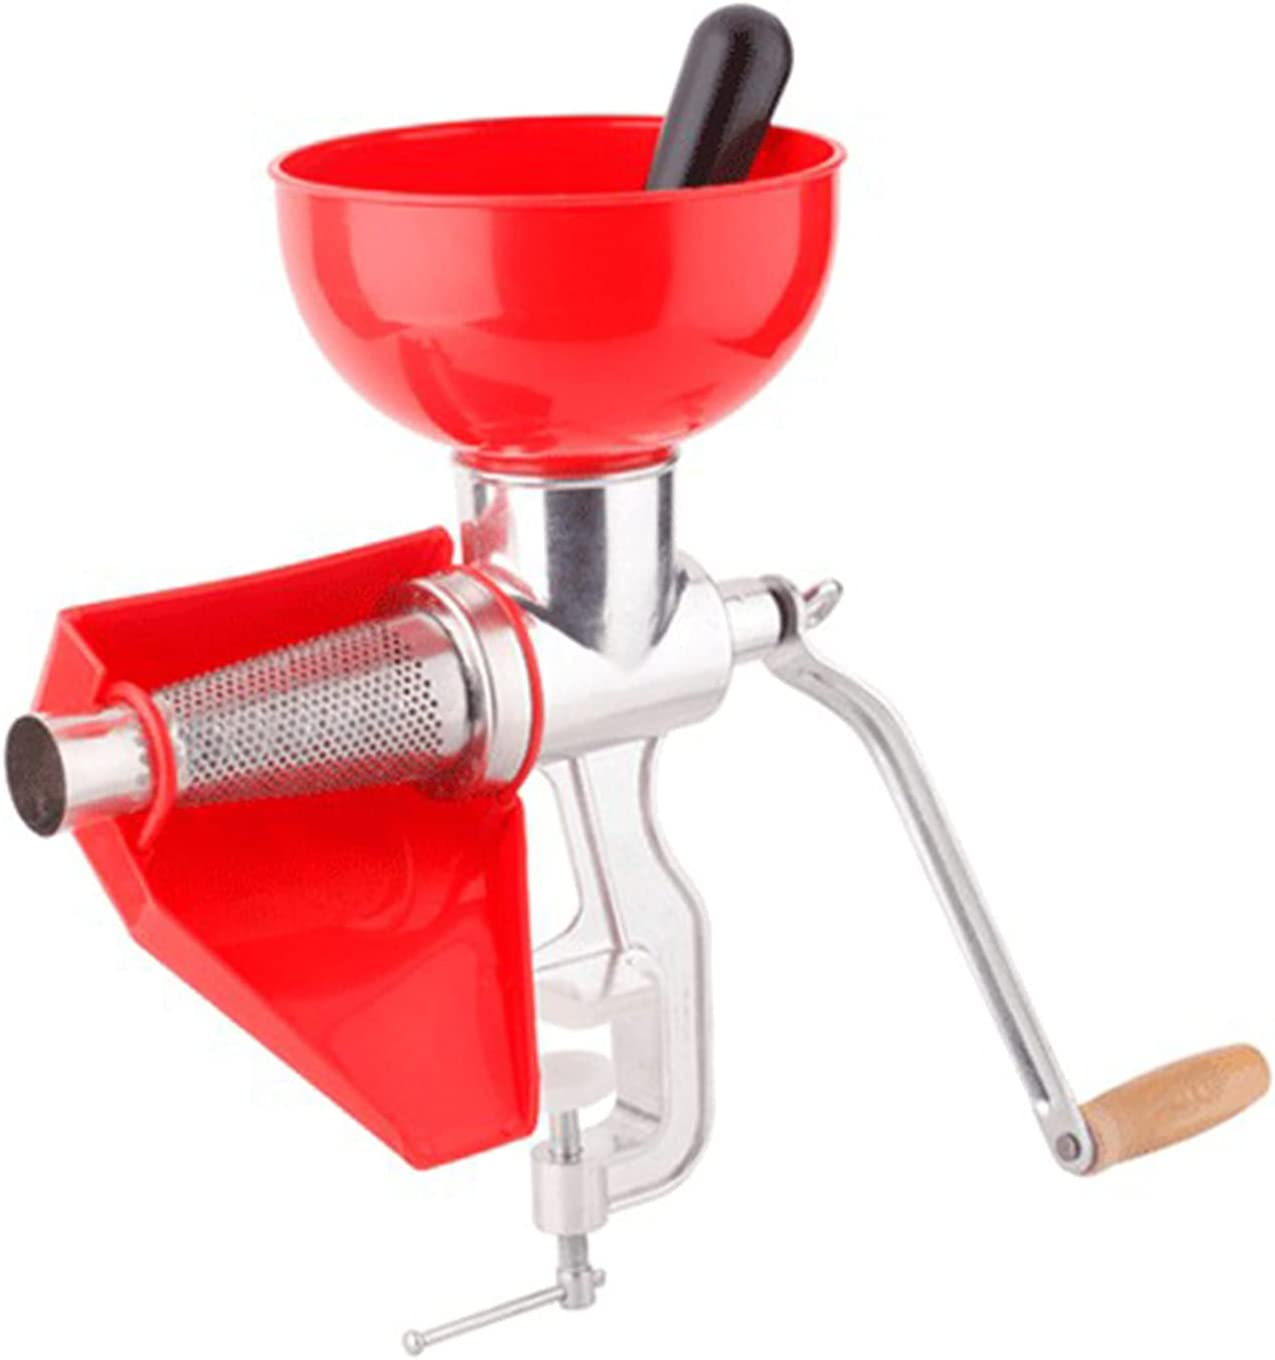 Kitchen Multifunctional Juicer for Fruit shop Squeezing A Vegetables Clearance SALE! Limited time!